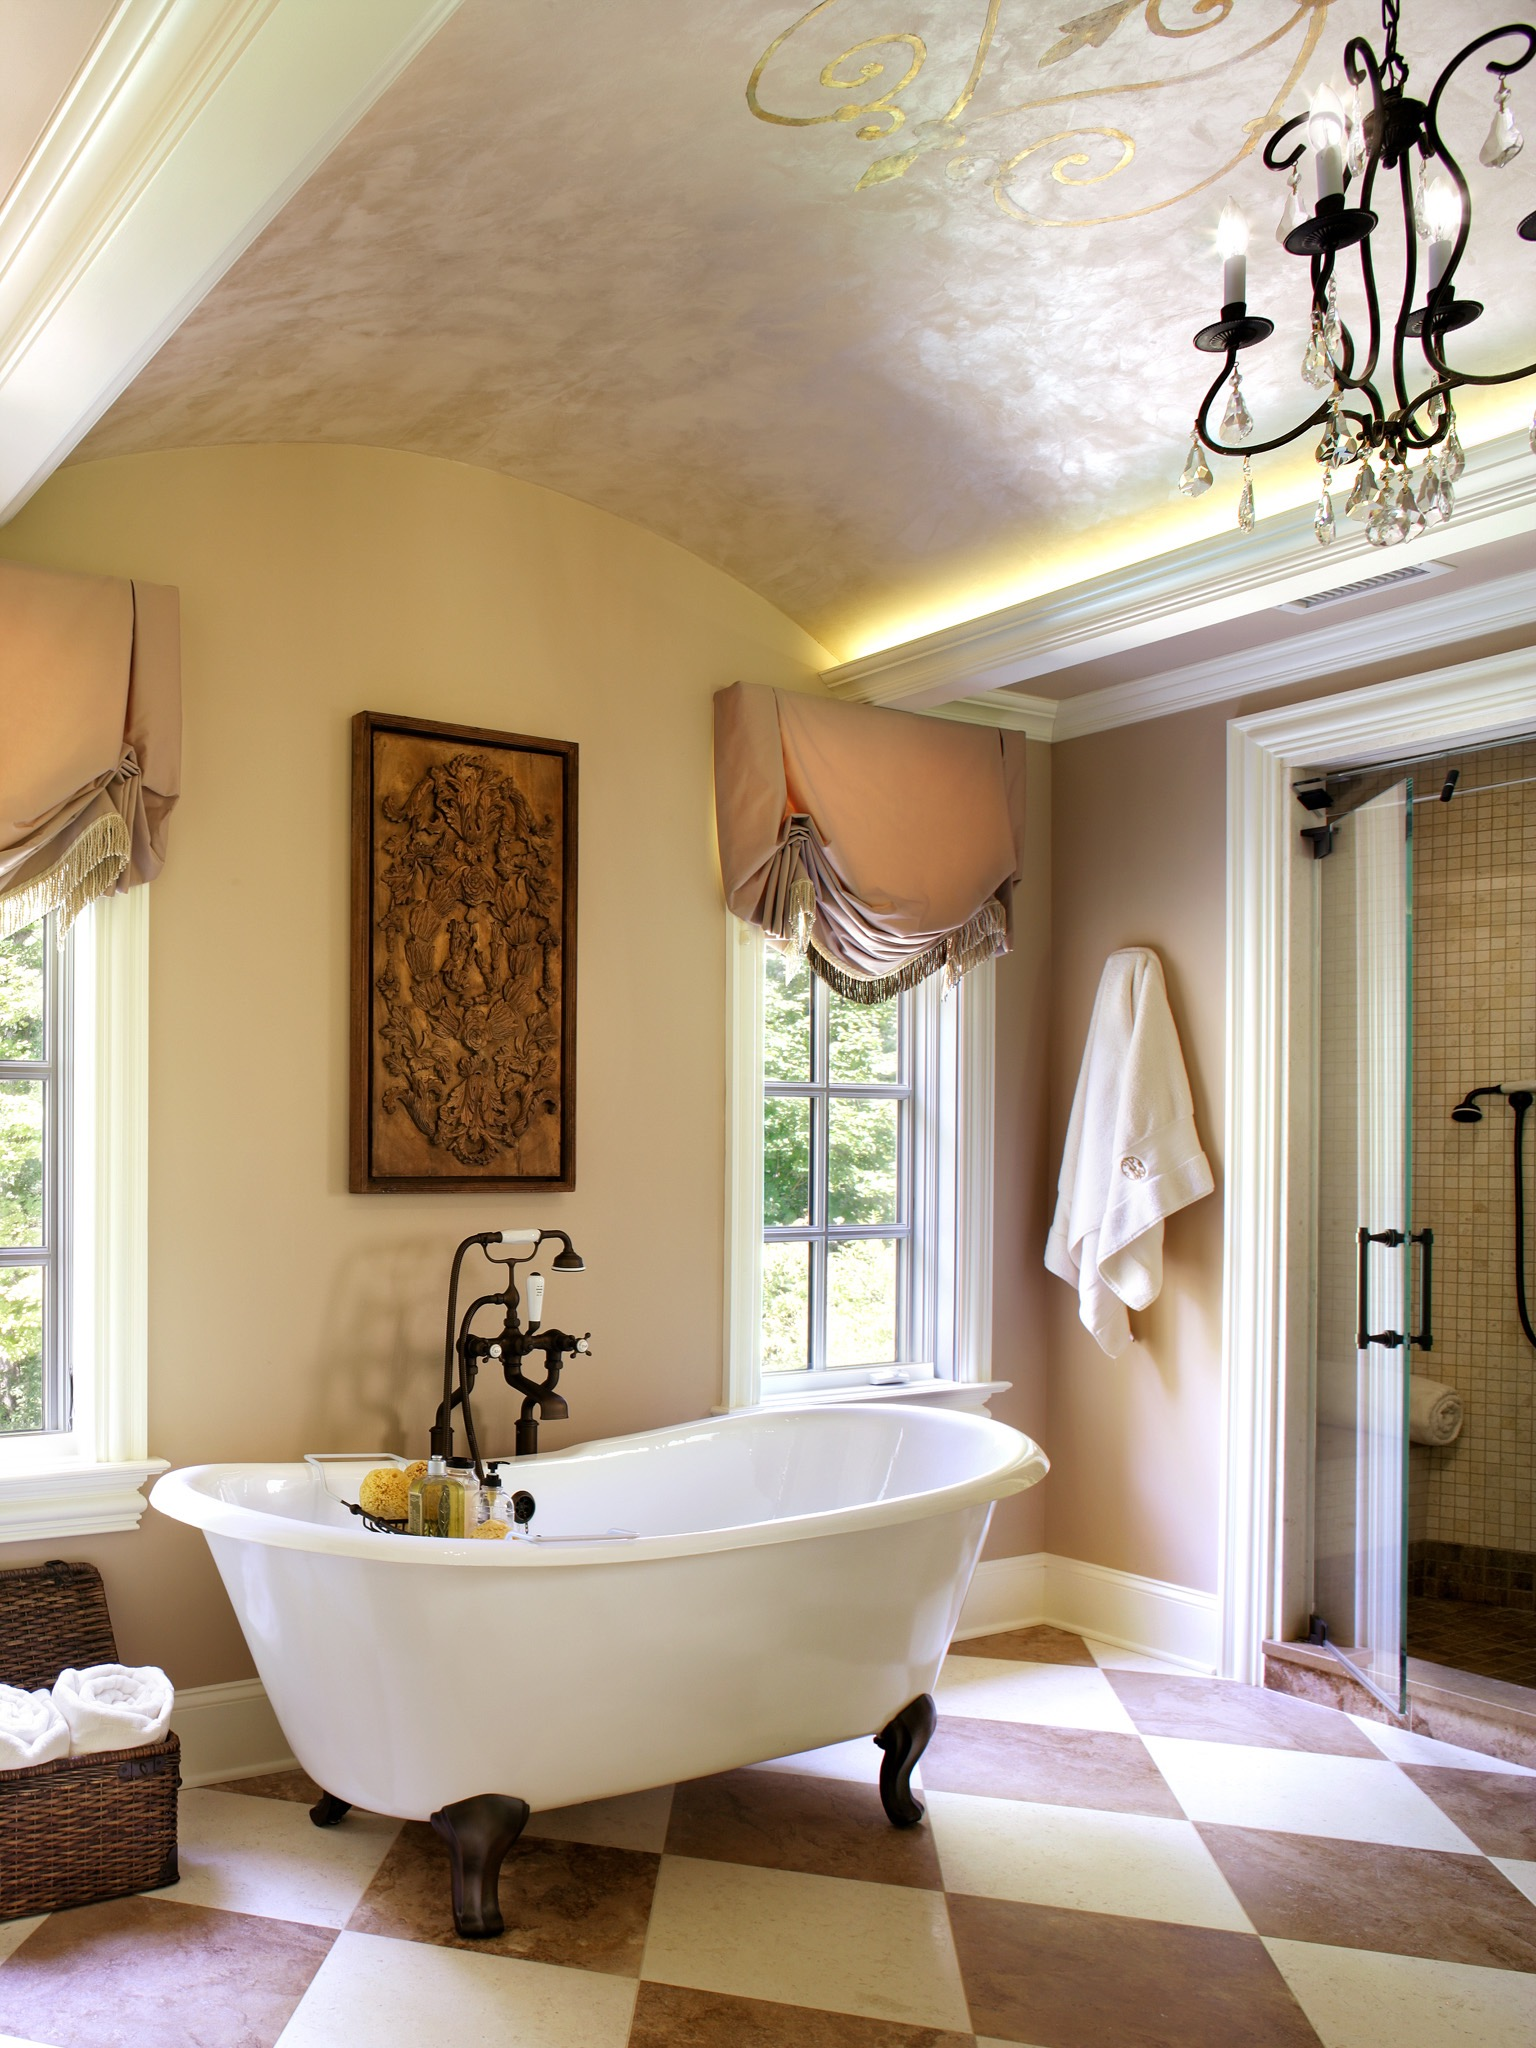 Classy French Style Bathroom With Claw Foot Tub (Image 14 of 29)